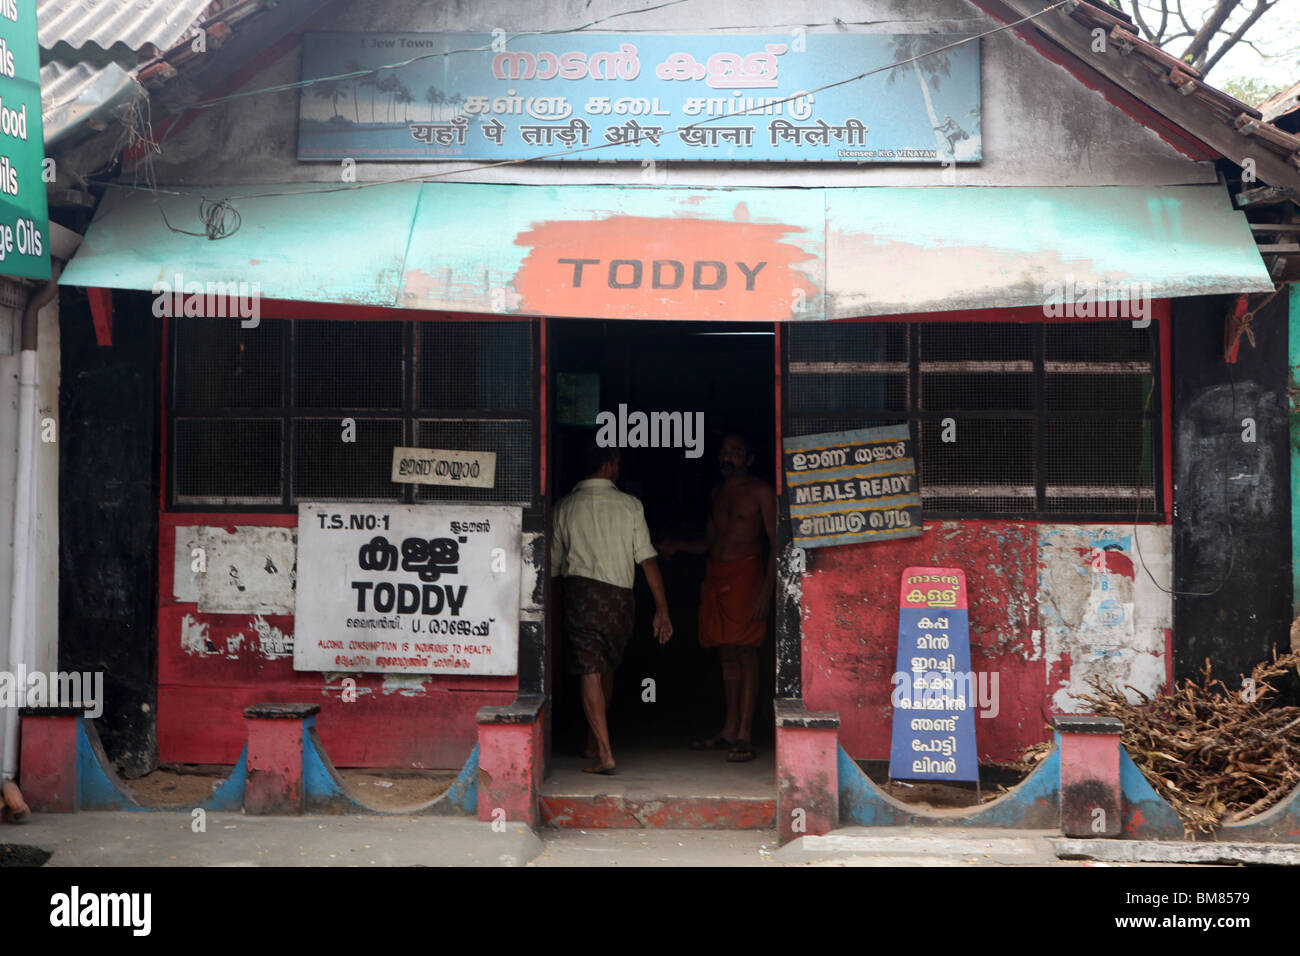 A Toddy shop ( alcoholic drink ) in Jew Town in Kochi, formerly known as Cochin in Kerala, India. - Stock Image